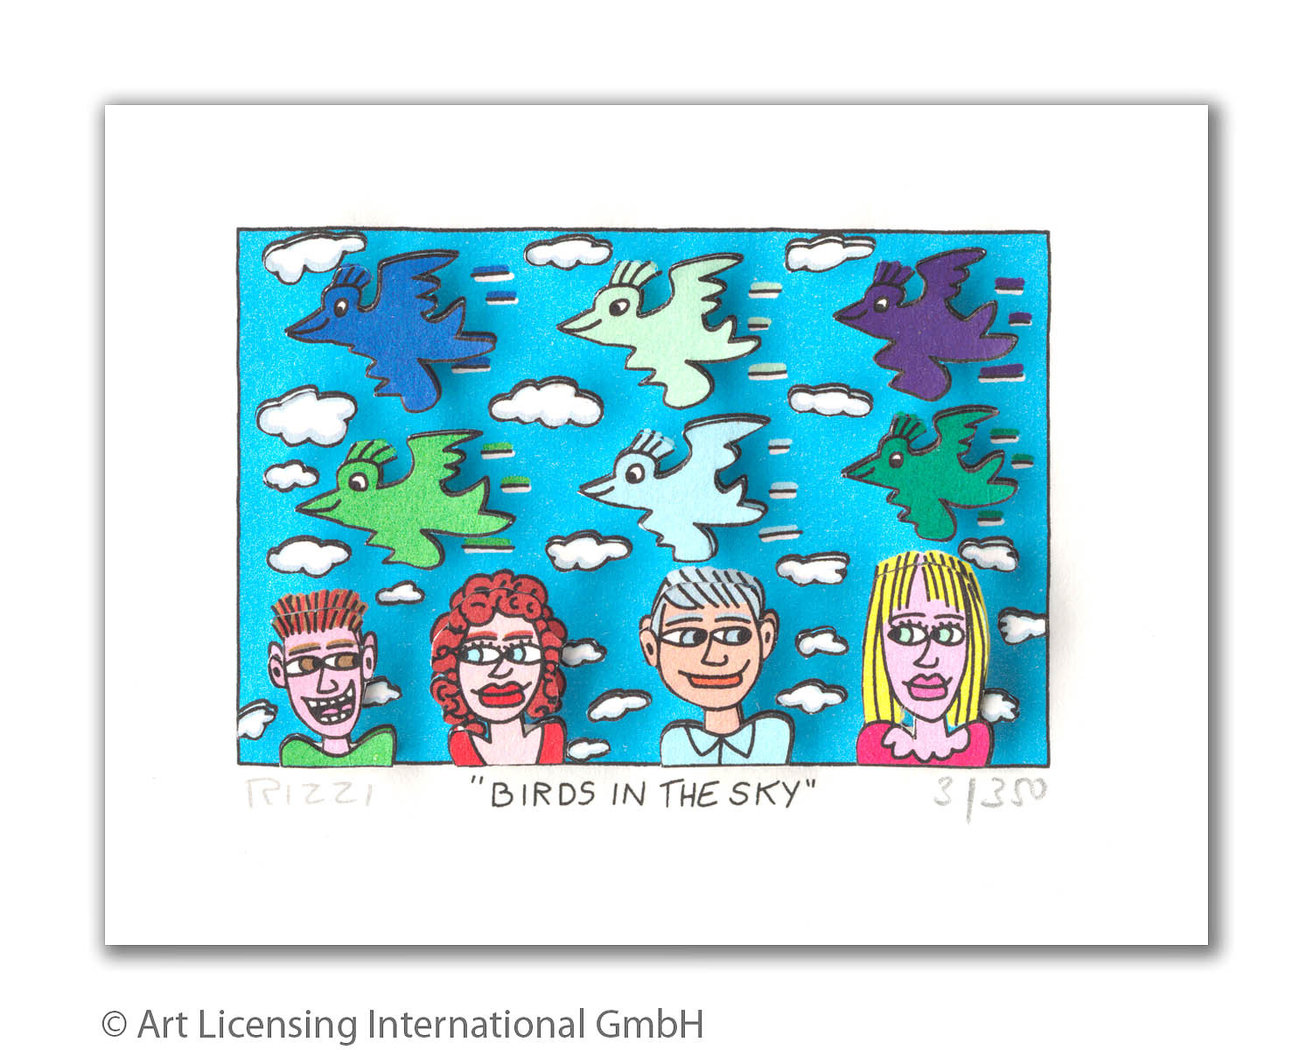 James Rizzi - BIRDS IN THE SKY